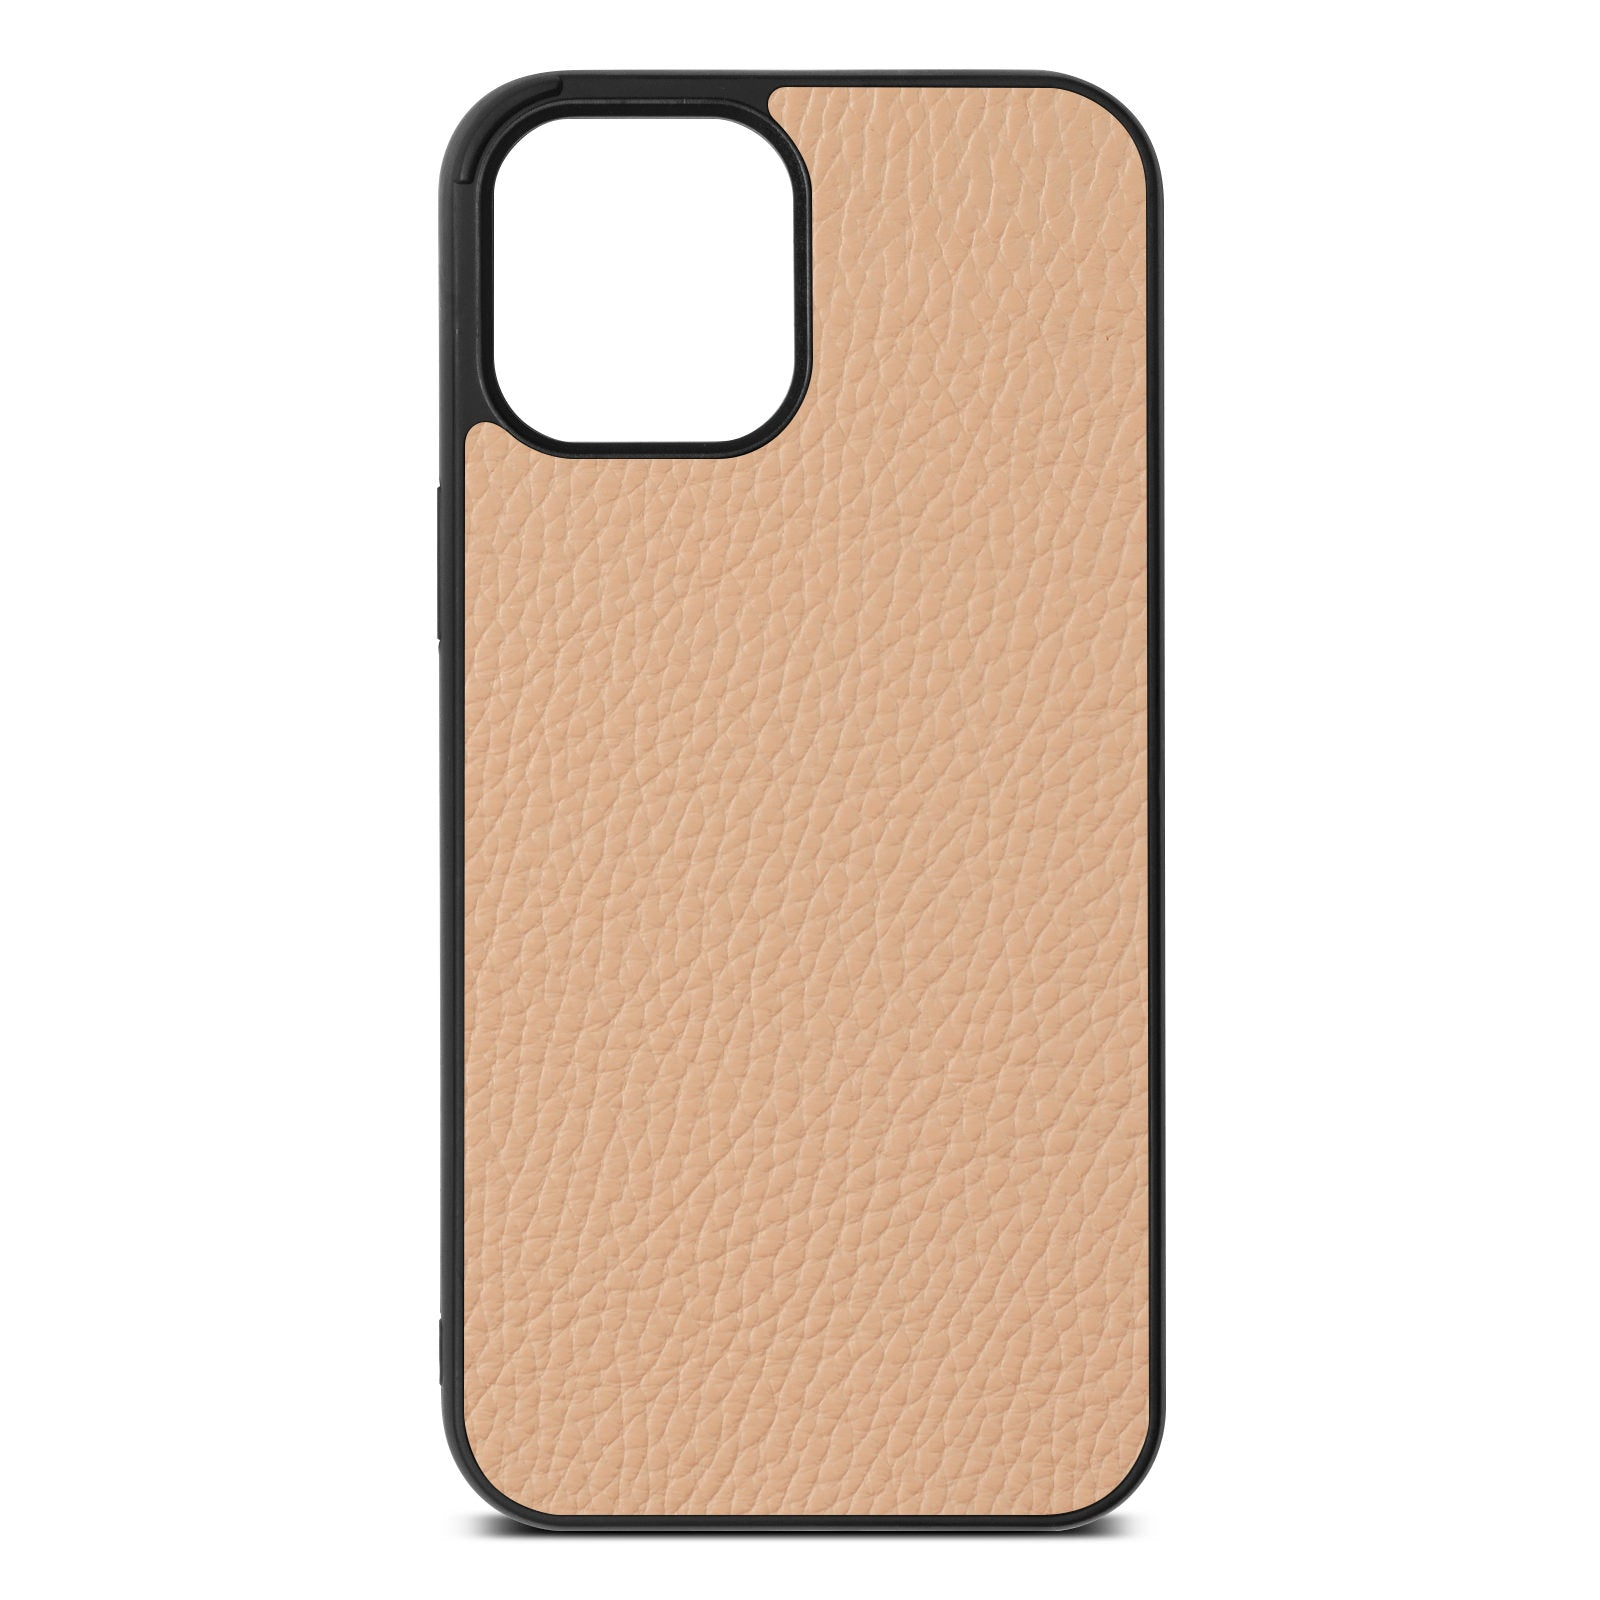 Blank iPhone 12 Pro Max Nude Pebble Leather Case